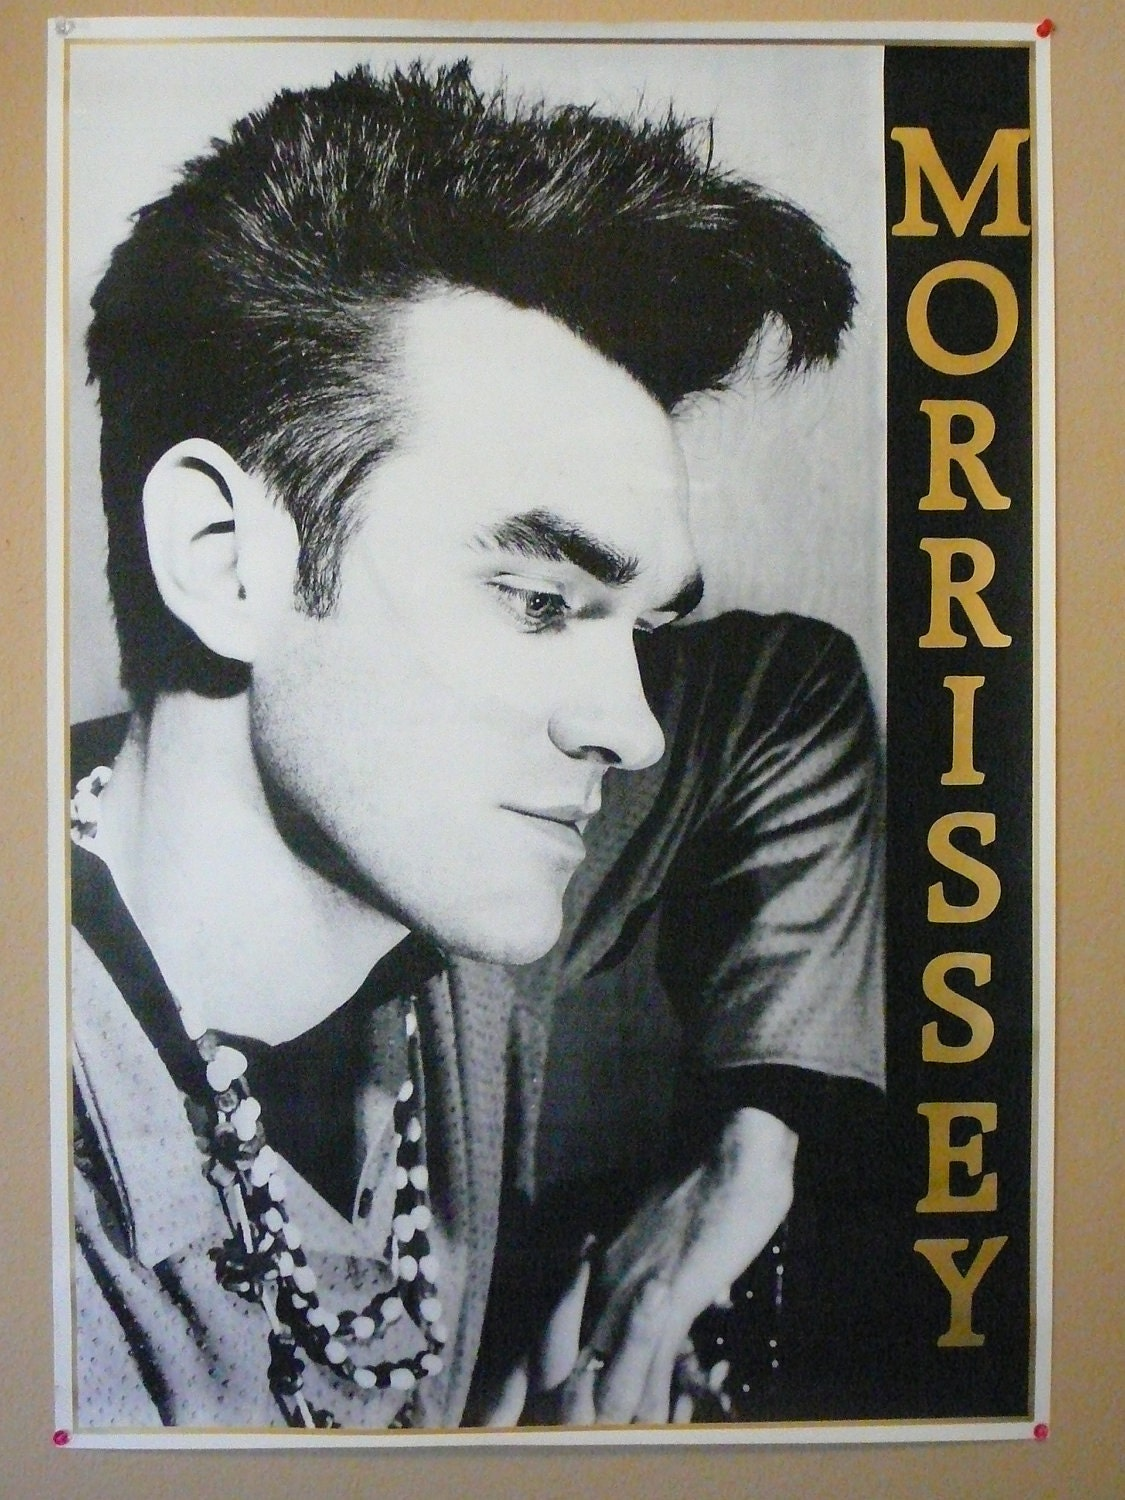 Vintage Morrissey The Smiths Poster 1980s Sale Was 24 99 Now